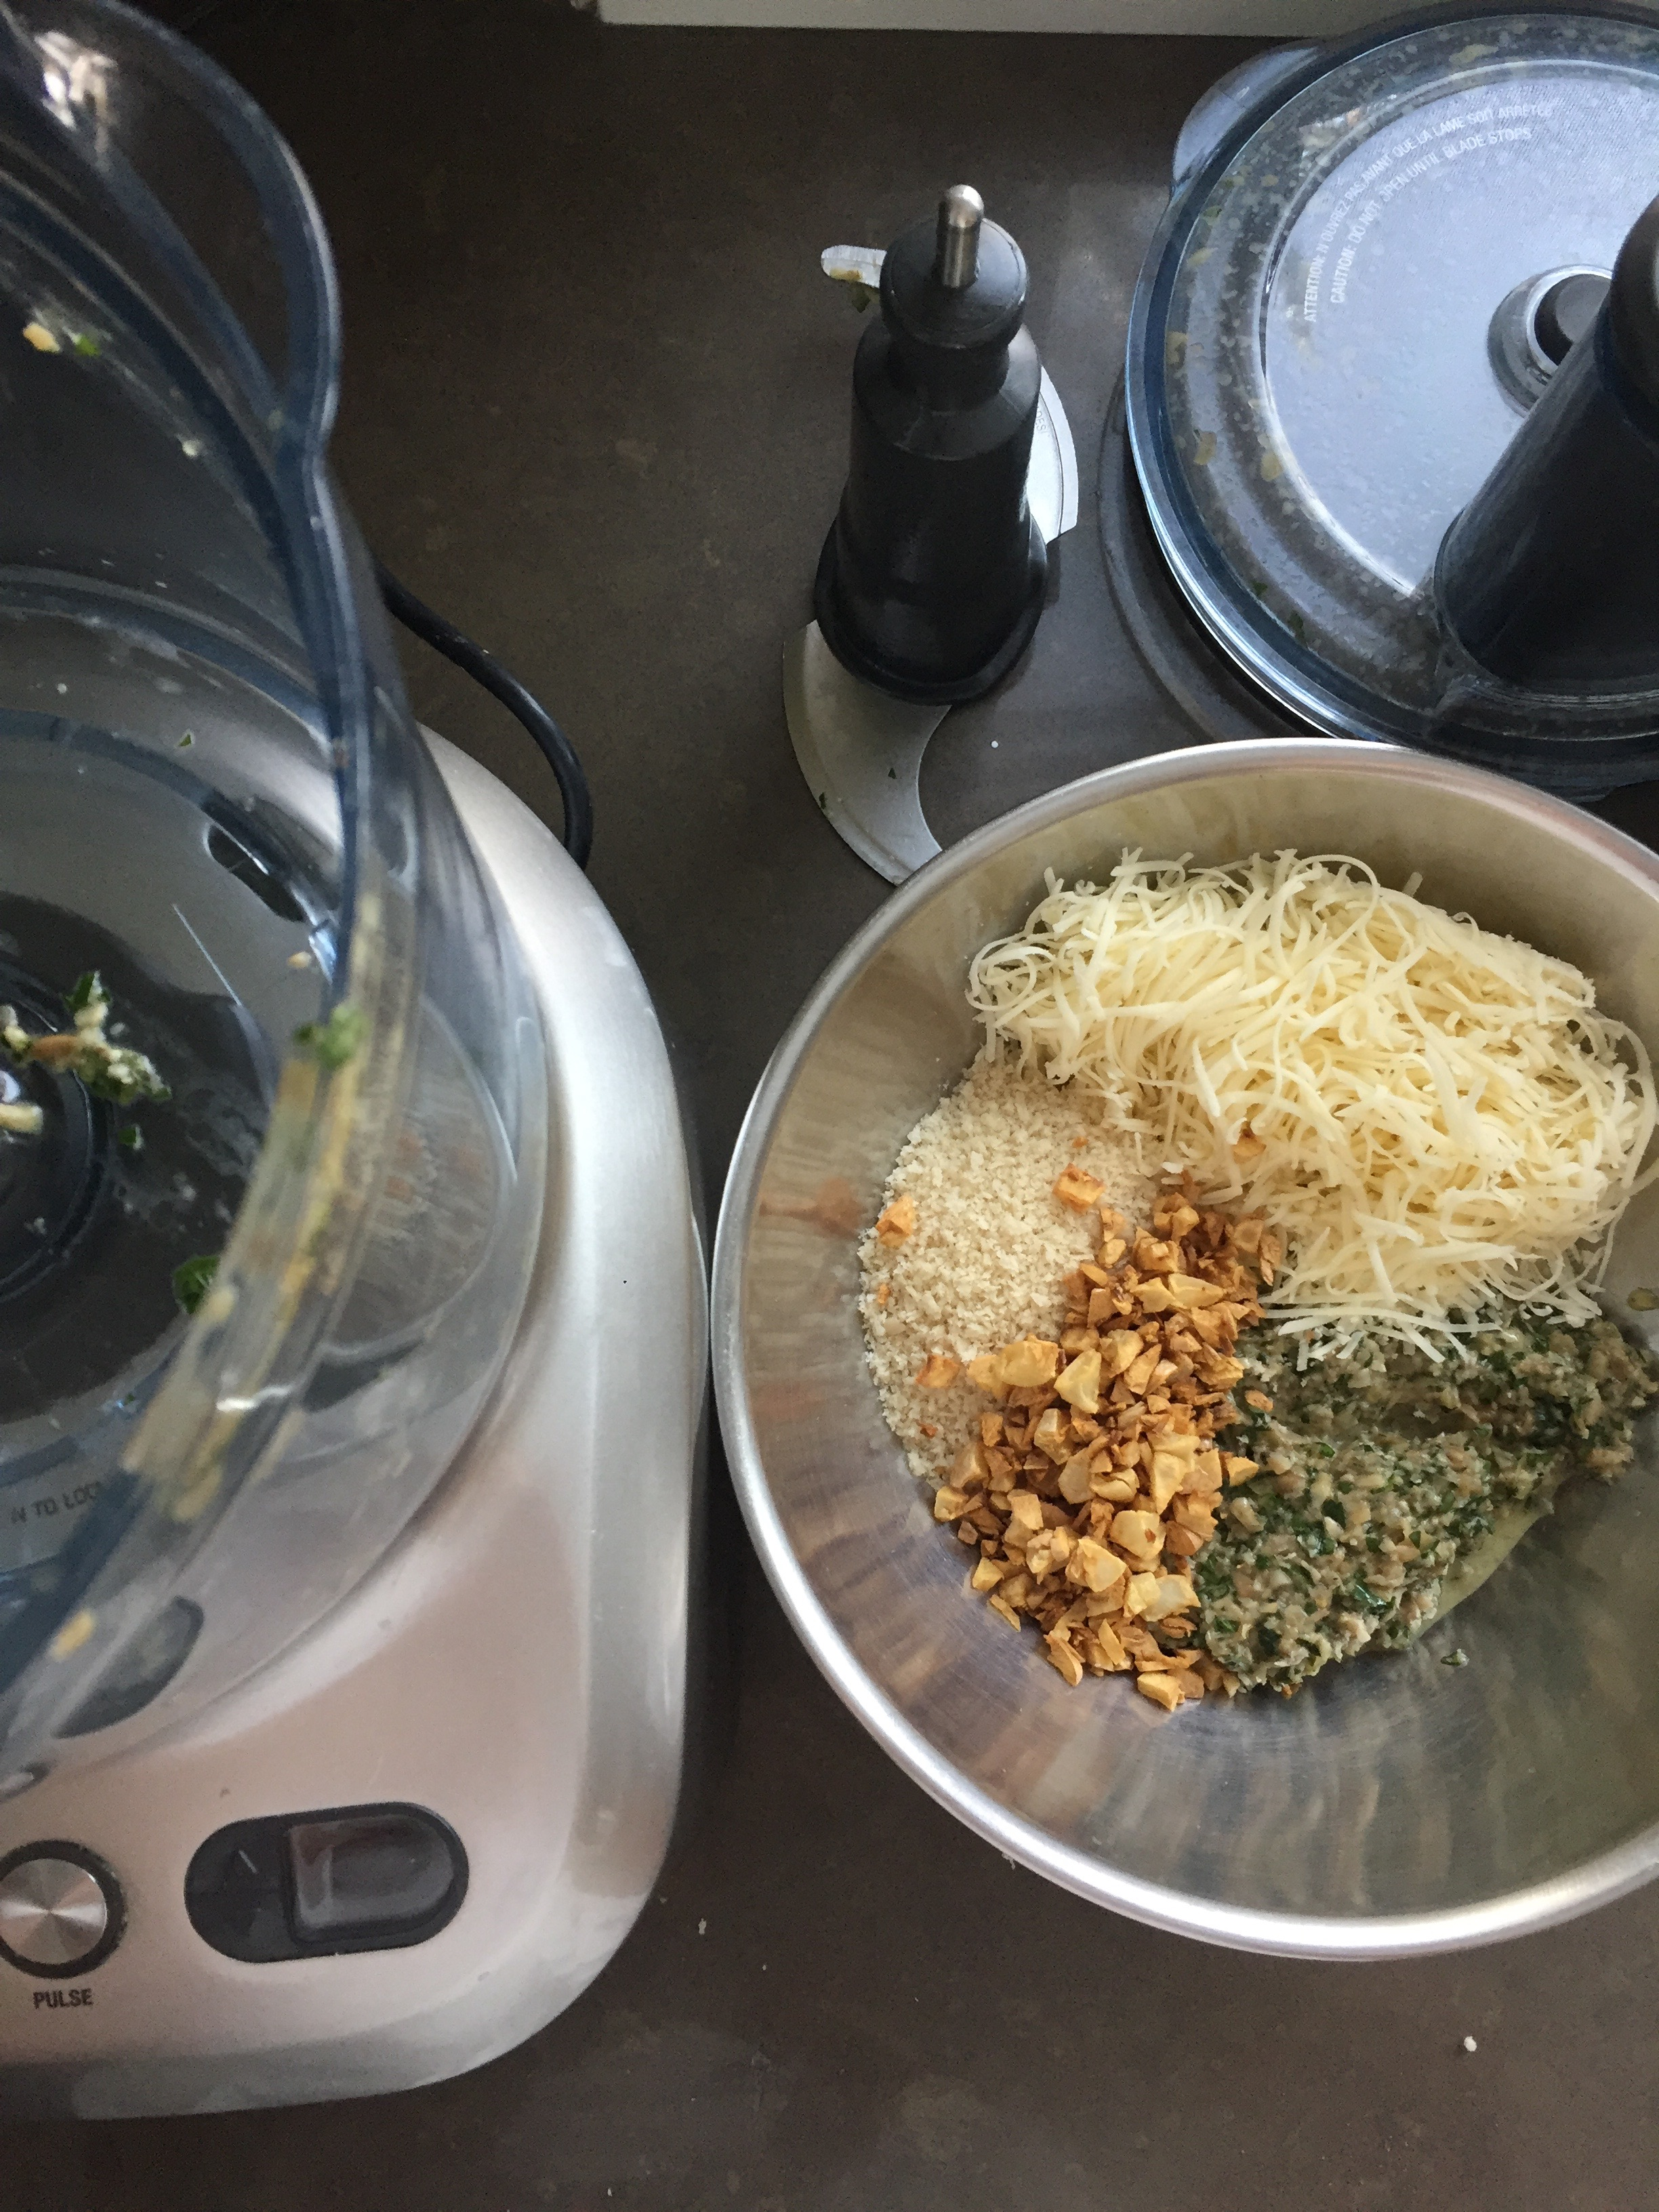 The filling comes together quickly in a food processor